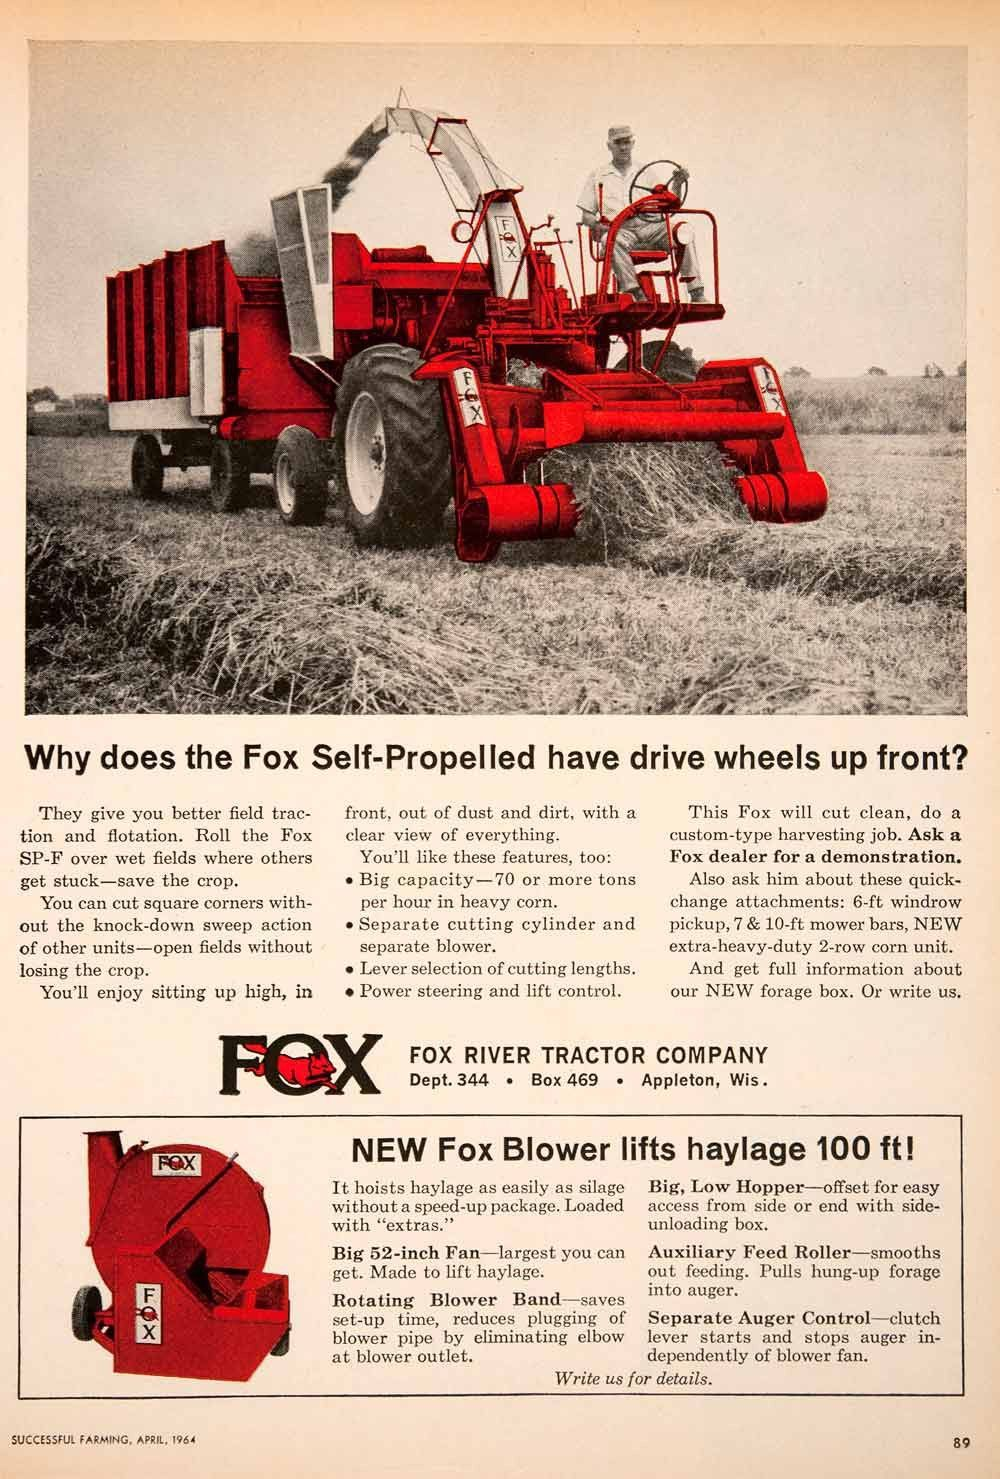 1964 Ad Fox River Tractor Appleton Wisconsin Hay Farmer Blower Machinery SF4